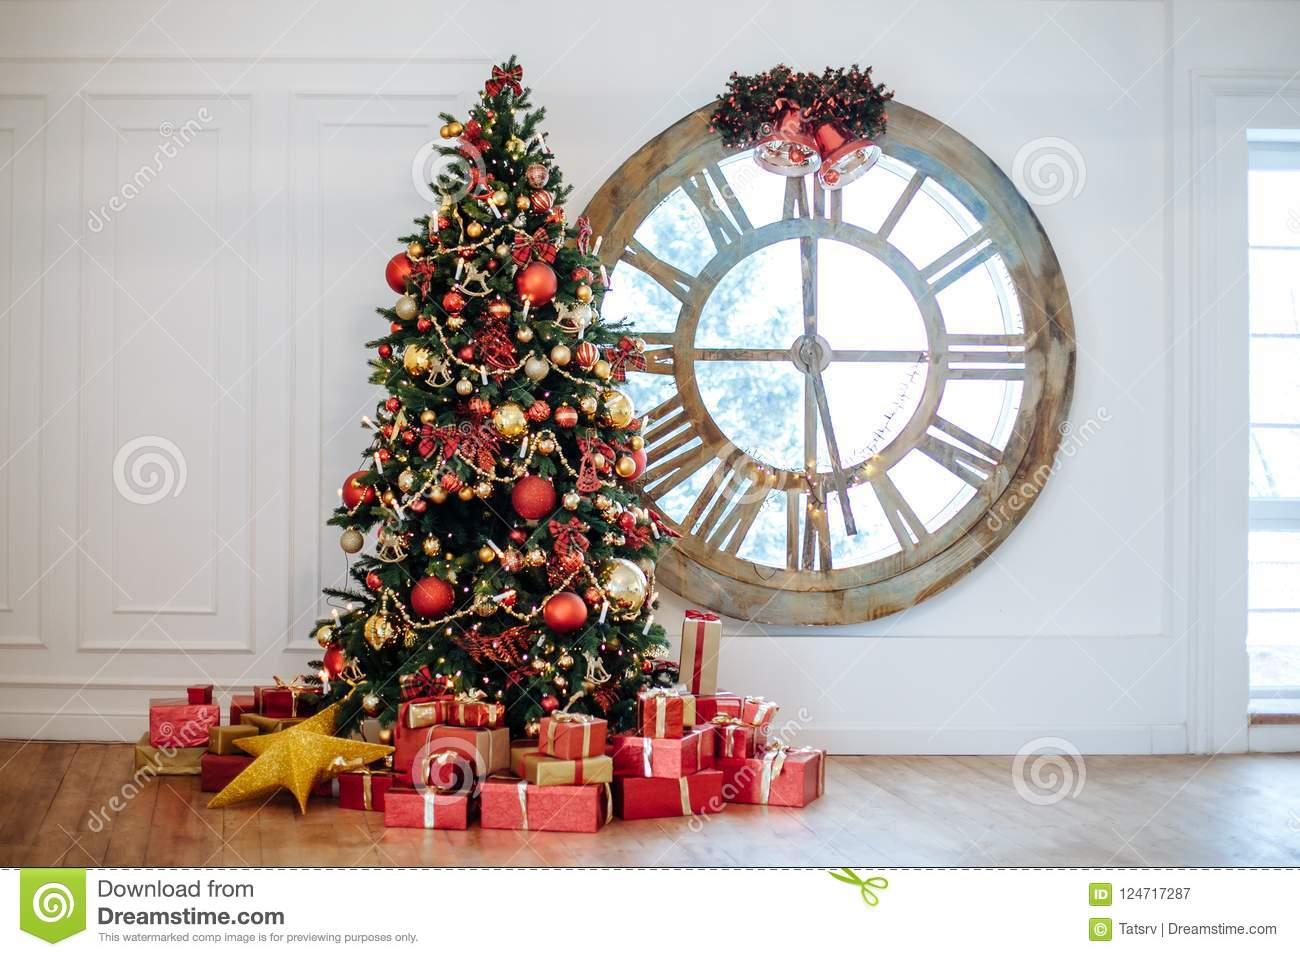 Beautiful Christmas Living Room With Decorated Christmas